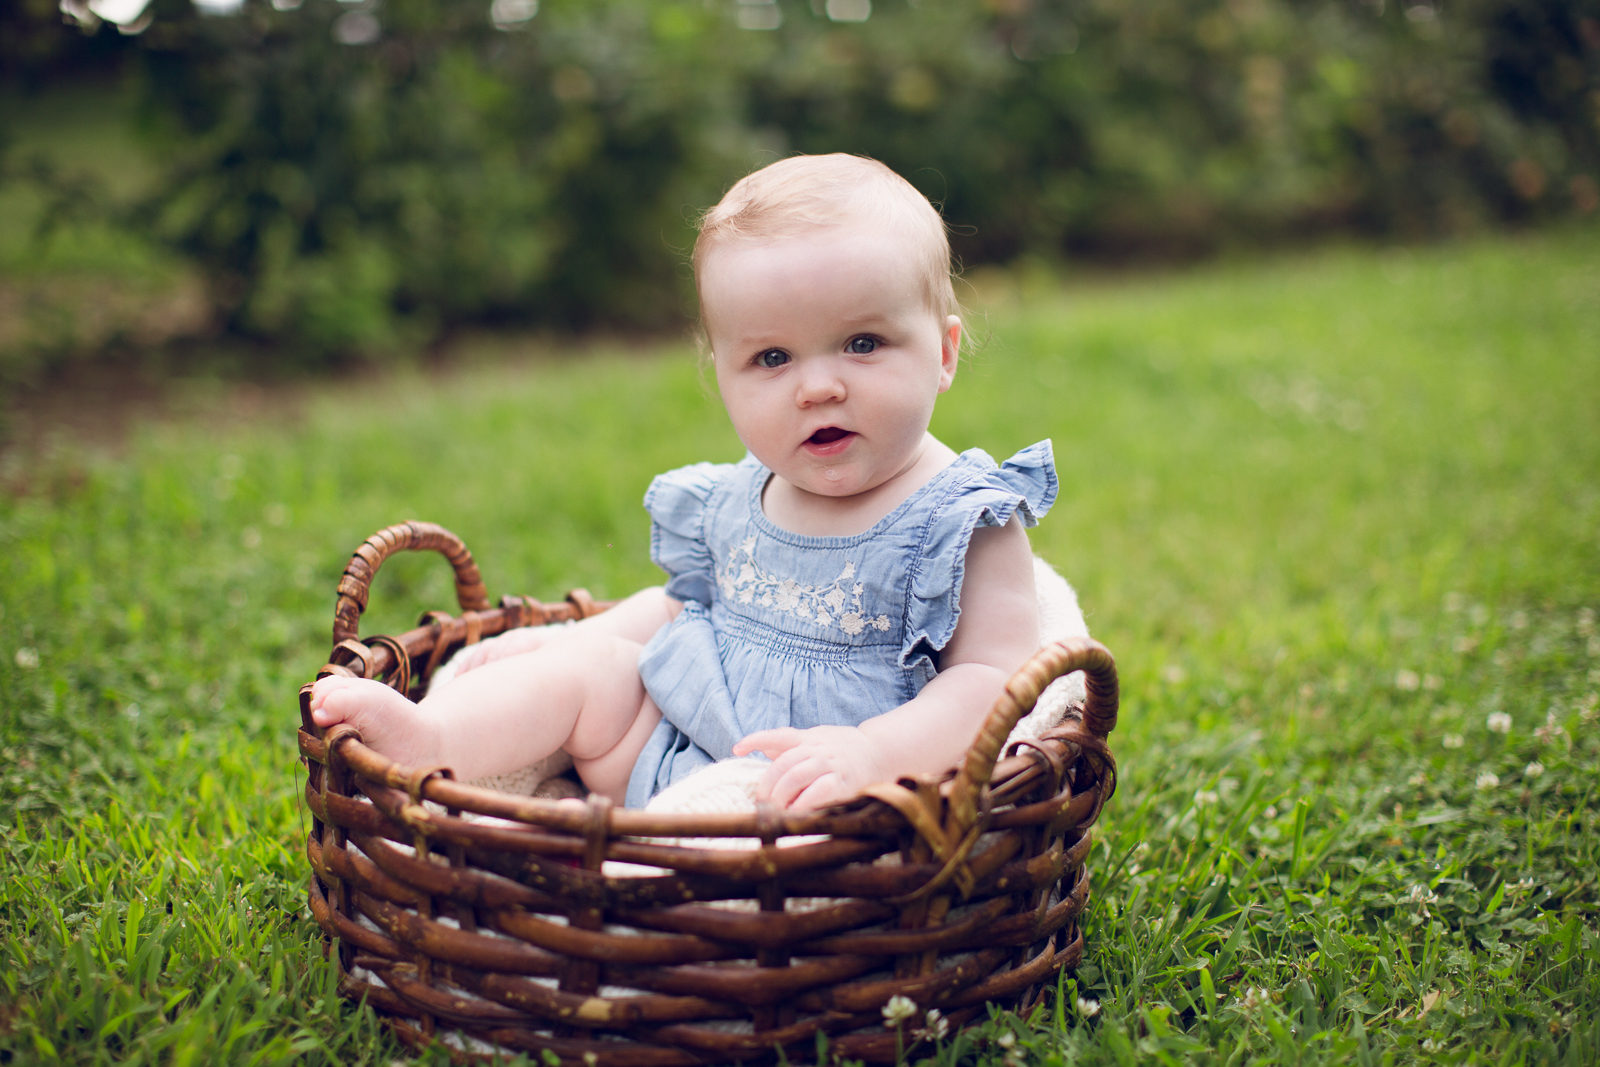 Hattie 6 month photographer lafayette indiana milestone photographer-21.jpg